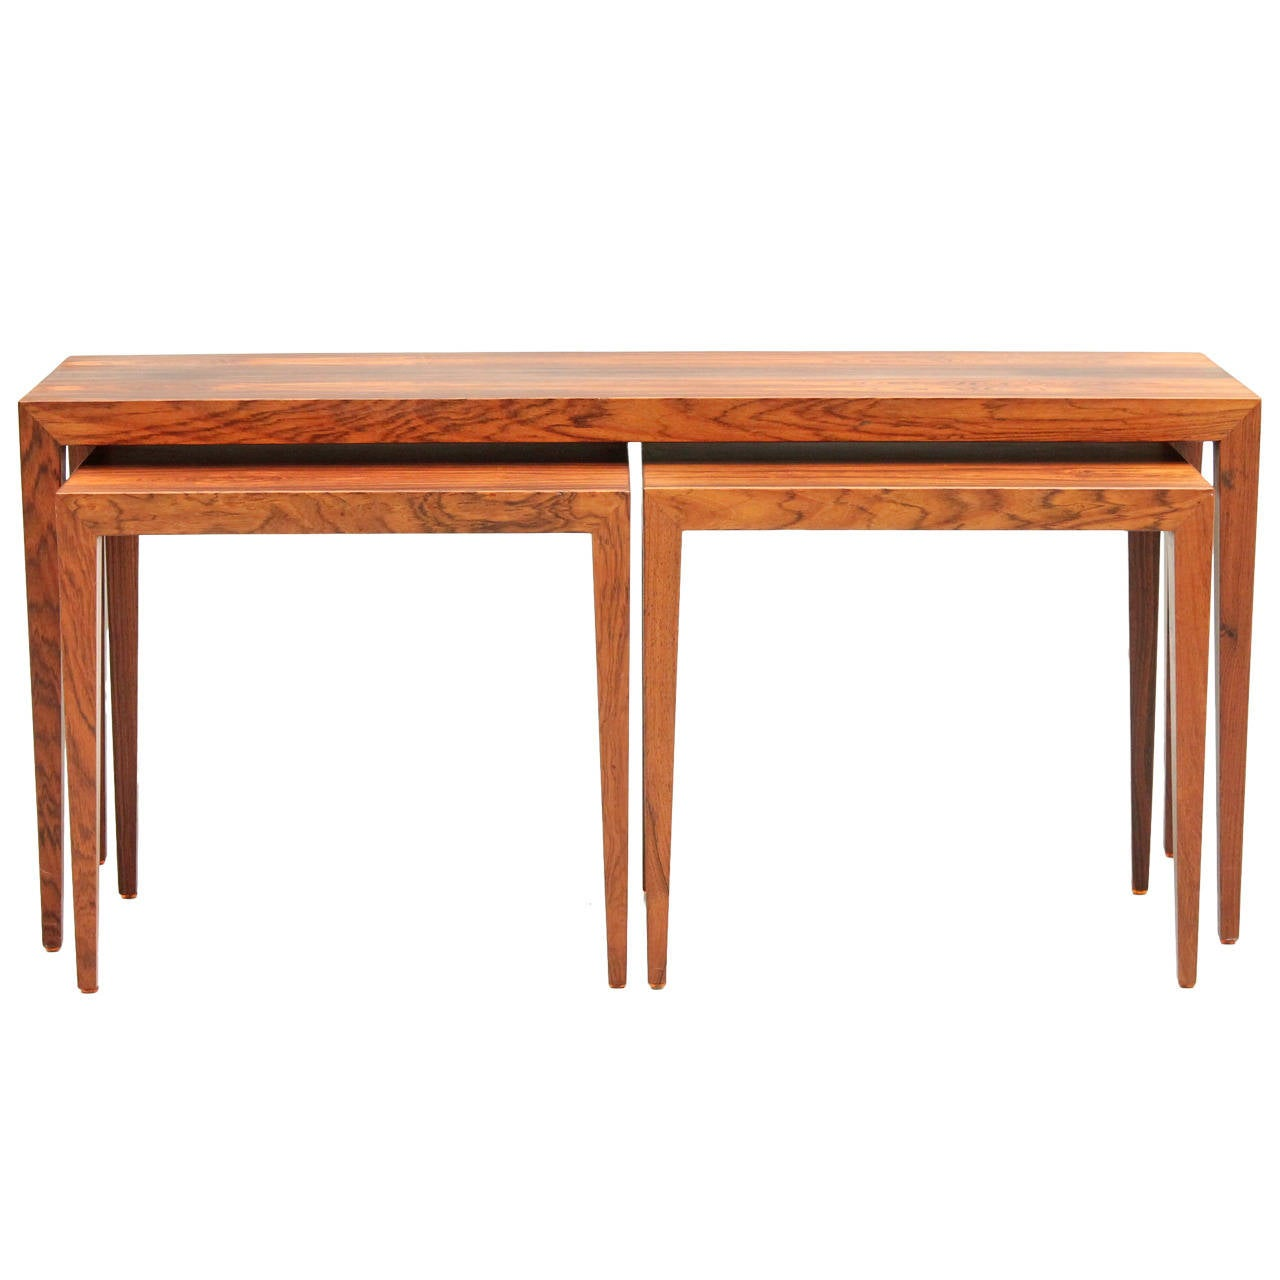 Danish mid century modern rosewood severin hansen jr for Table th means